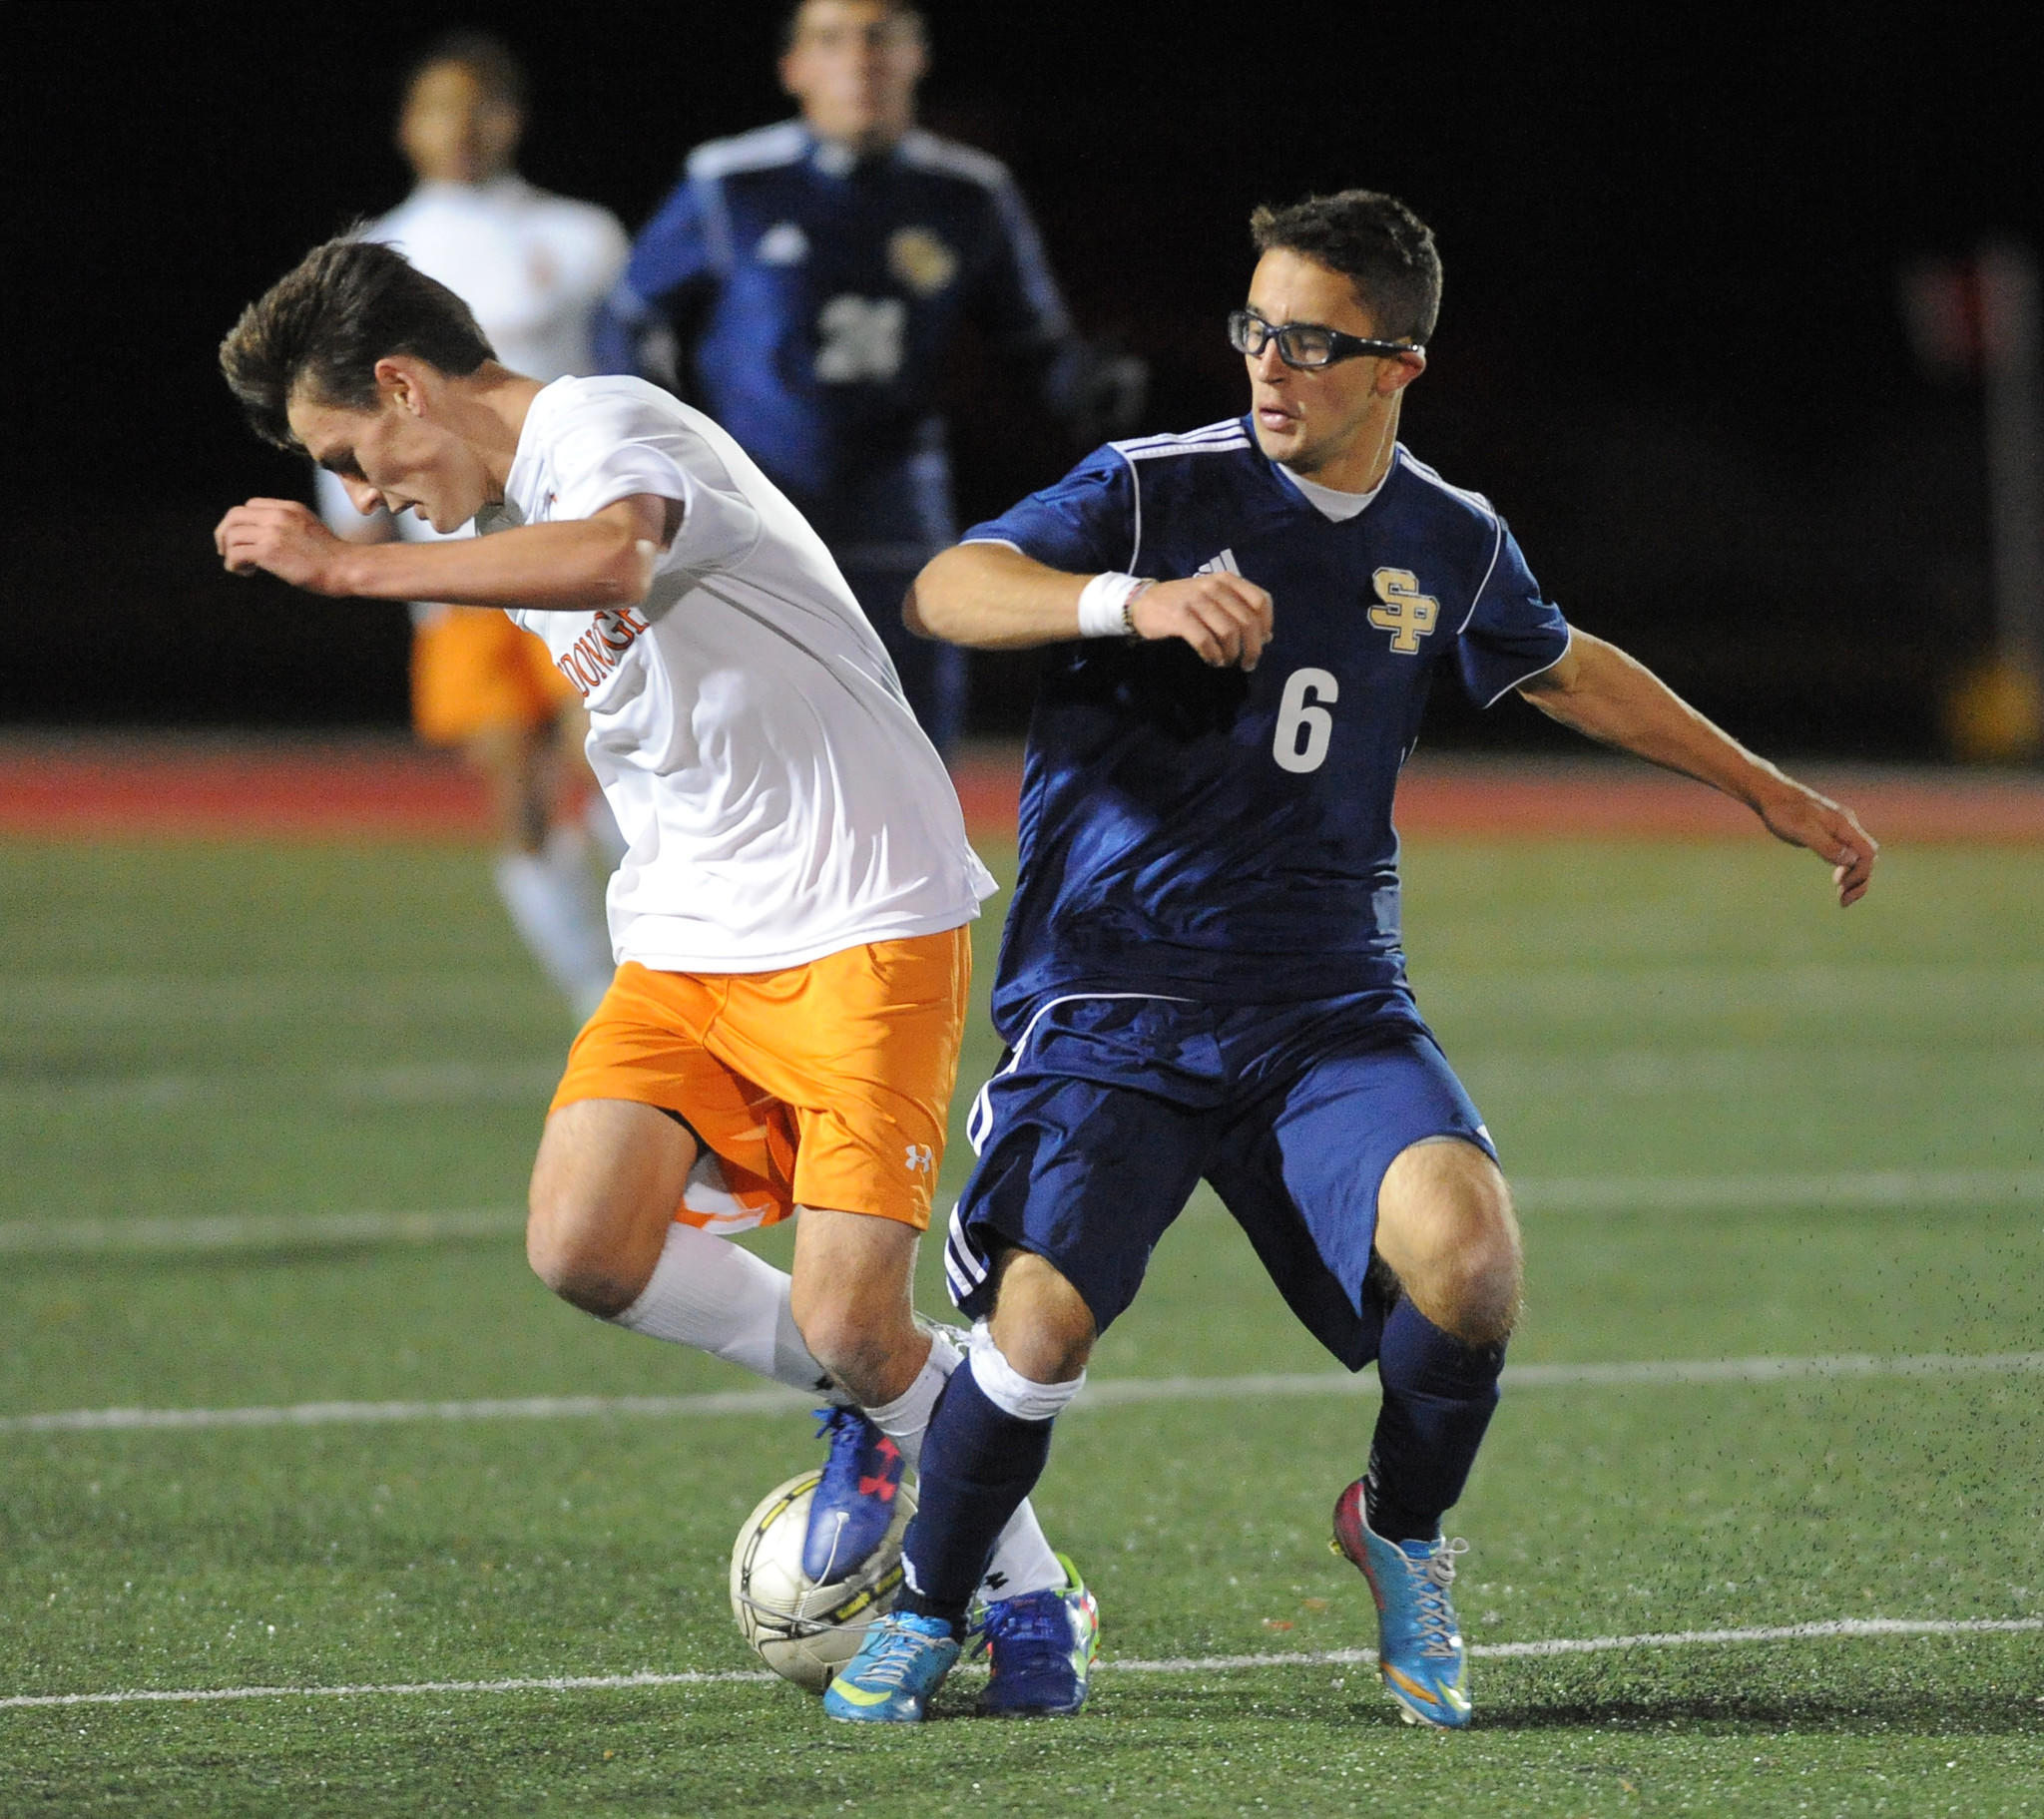 McDonogh's Keegan Kelly, left, and St. Paul's' Nate Hall try to get a foot to the ball.